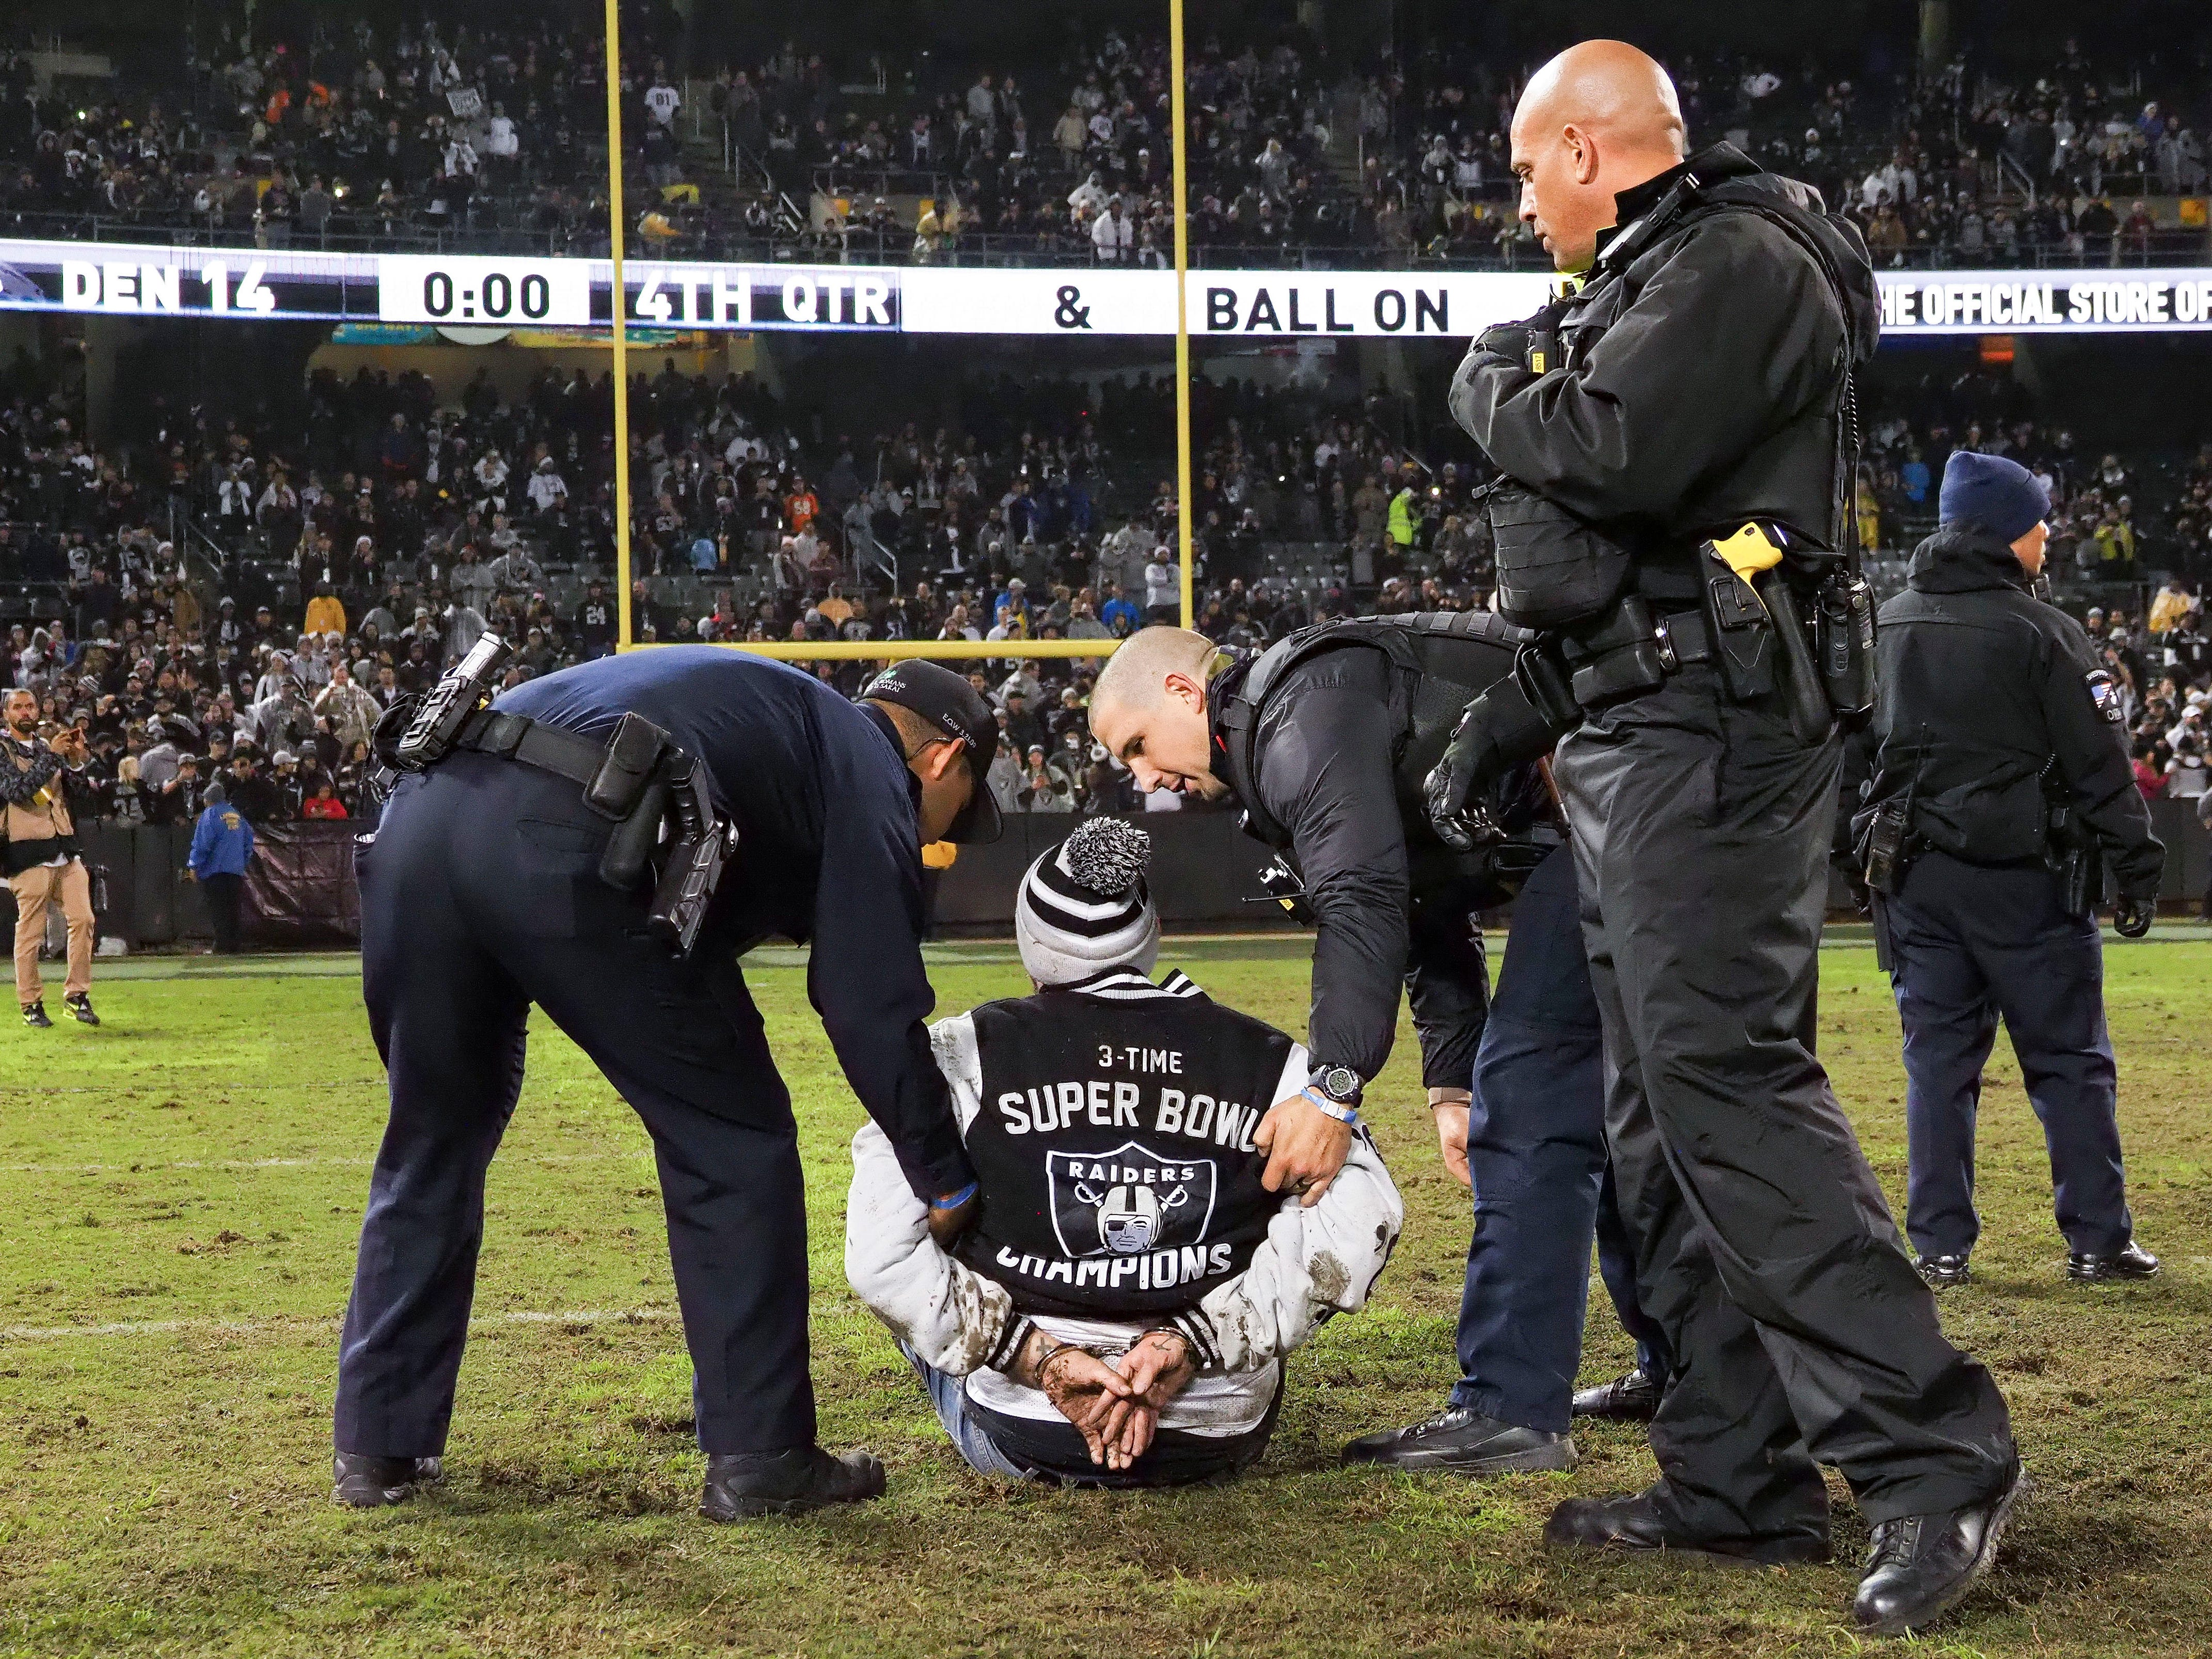 An Oakland Raiders fan is handcuffed after rushing the field after the game against the Denver Broncos at Oakland Coliseum.